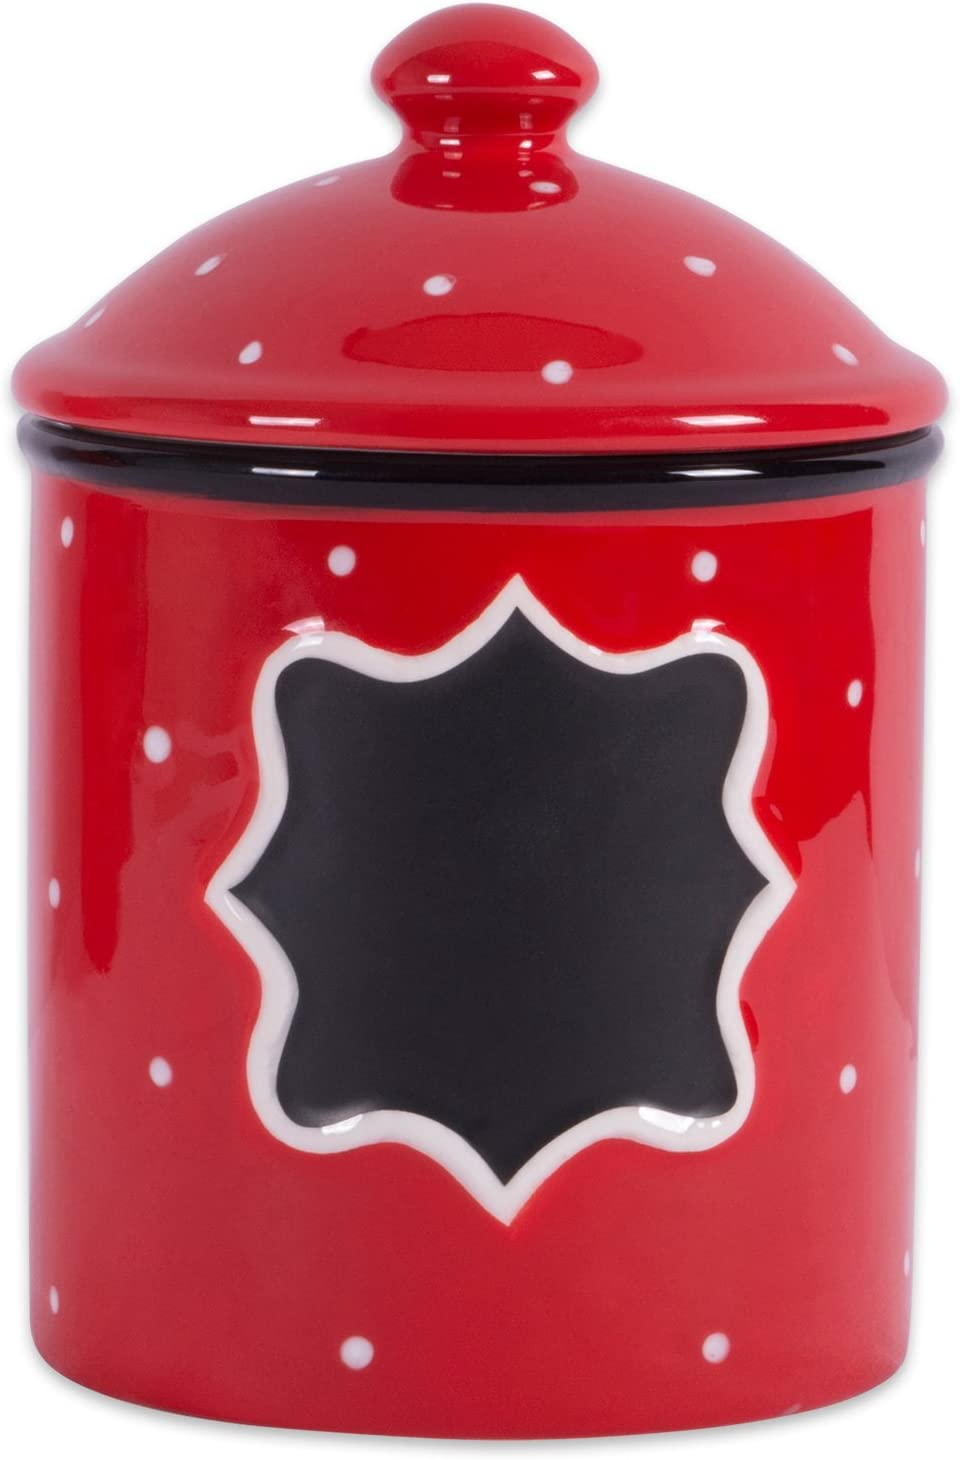 DII Ceramic RED Canister Small, Poka Dot